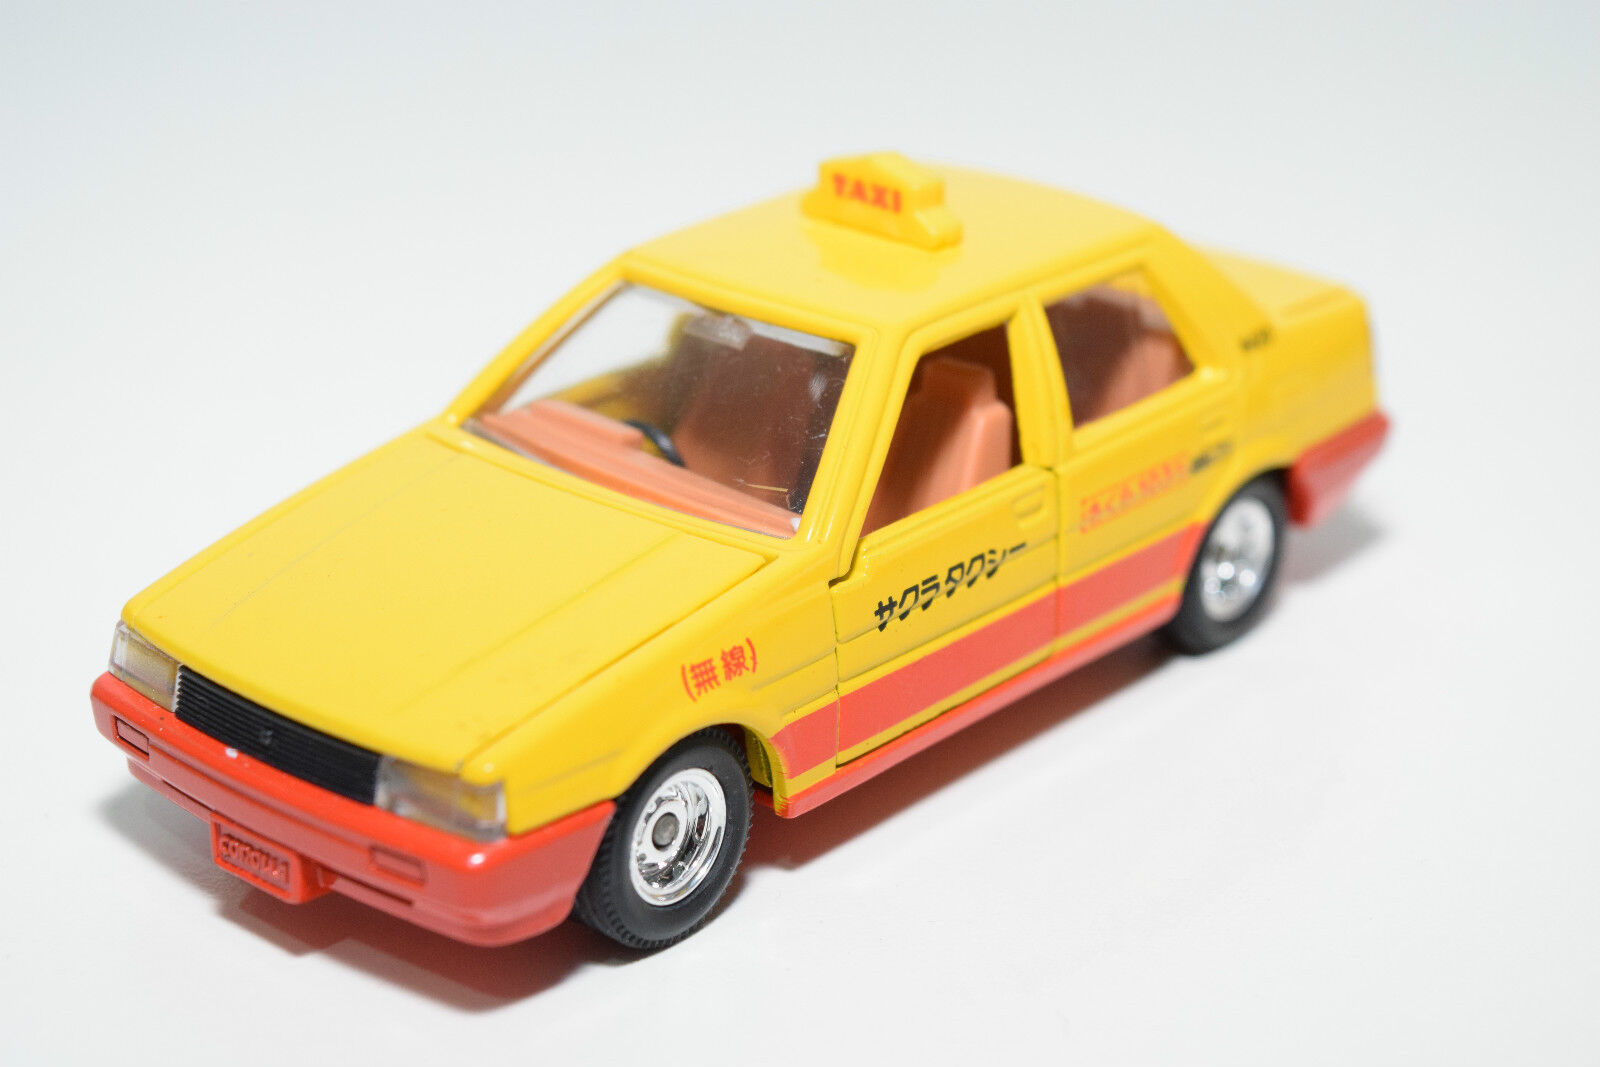 TOMICA DANDY TOMY TOYOTA CgoldLLA SEDAN TAXI YELLOW MINT CONDITION